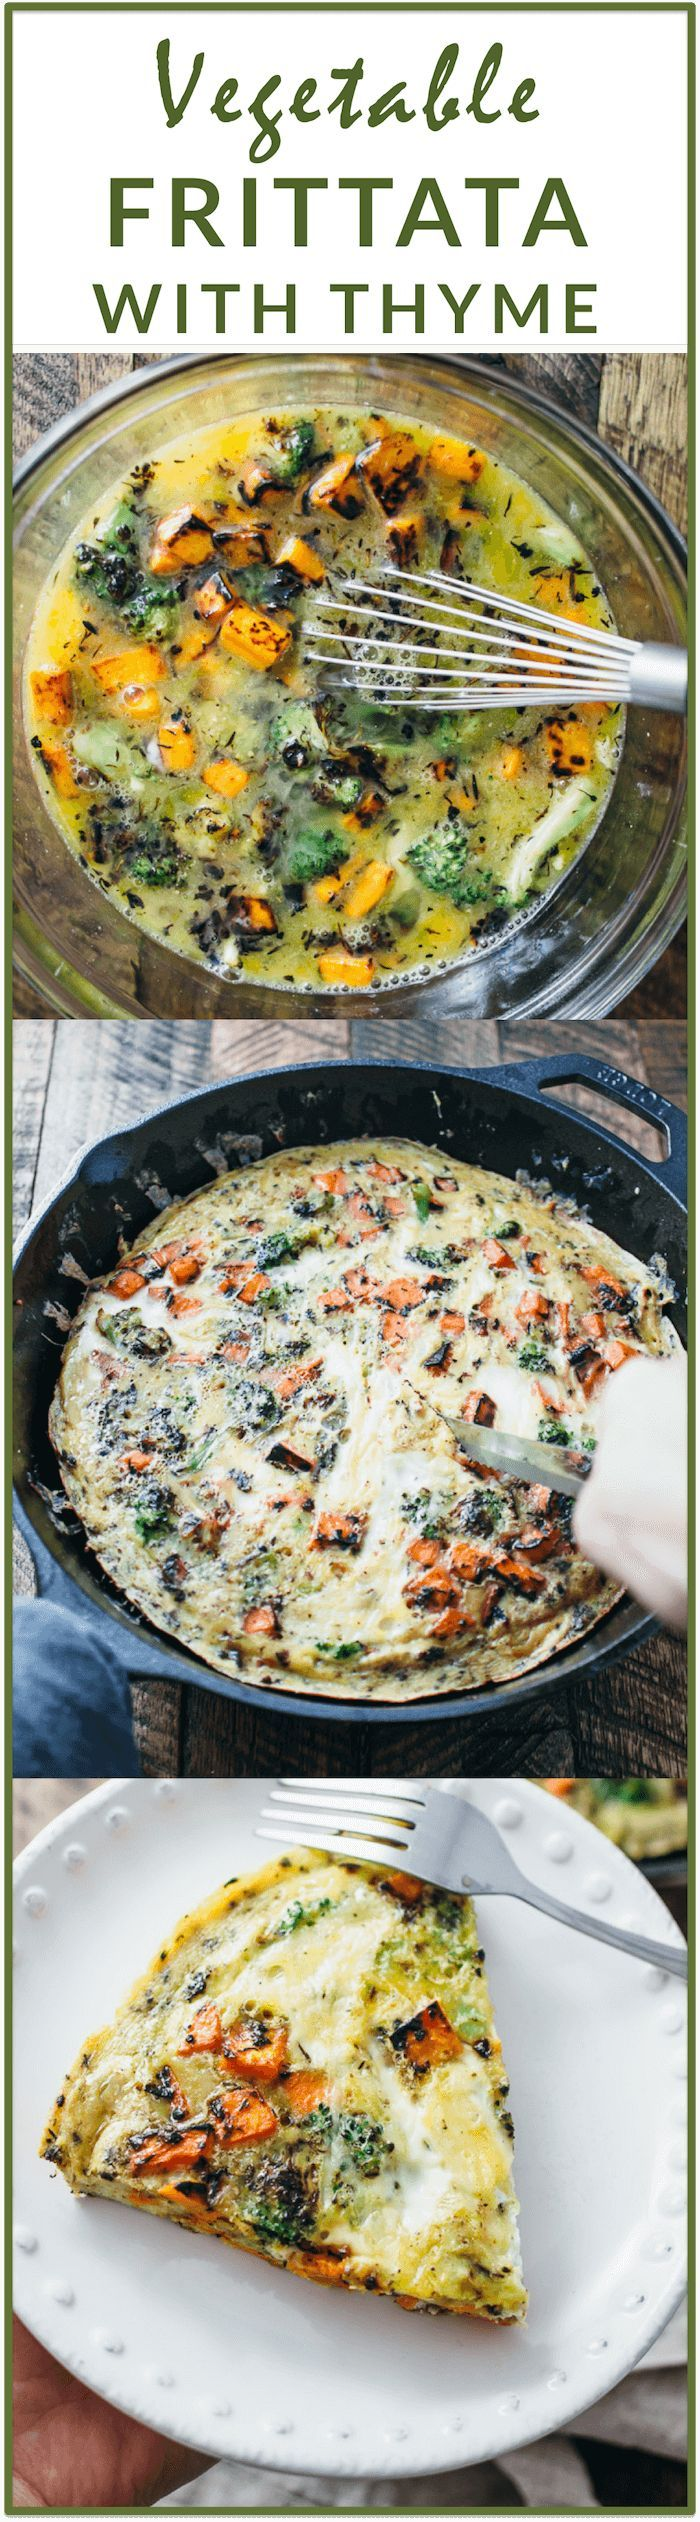 Broccoli and sweet potato frittata with thyme - I love this healthy and easy vegetable frittata — it's a one-pan dish that starts on the stove and then finishes in the oven. This recipe works great for all kinds of vegetables, if you're looking to clean out some veggies in your fridge. I used broccoli and sweet potato; other great ideas include spinach, asparagus, potato, and mushrooms. Yum